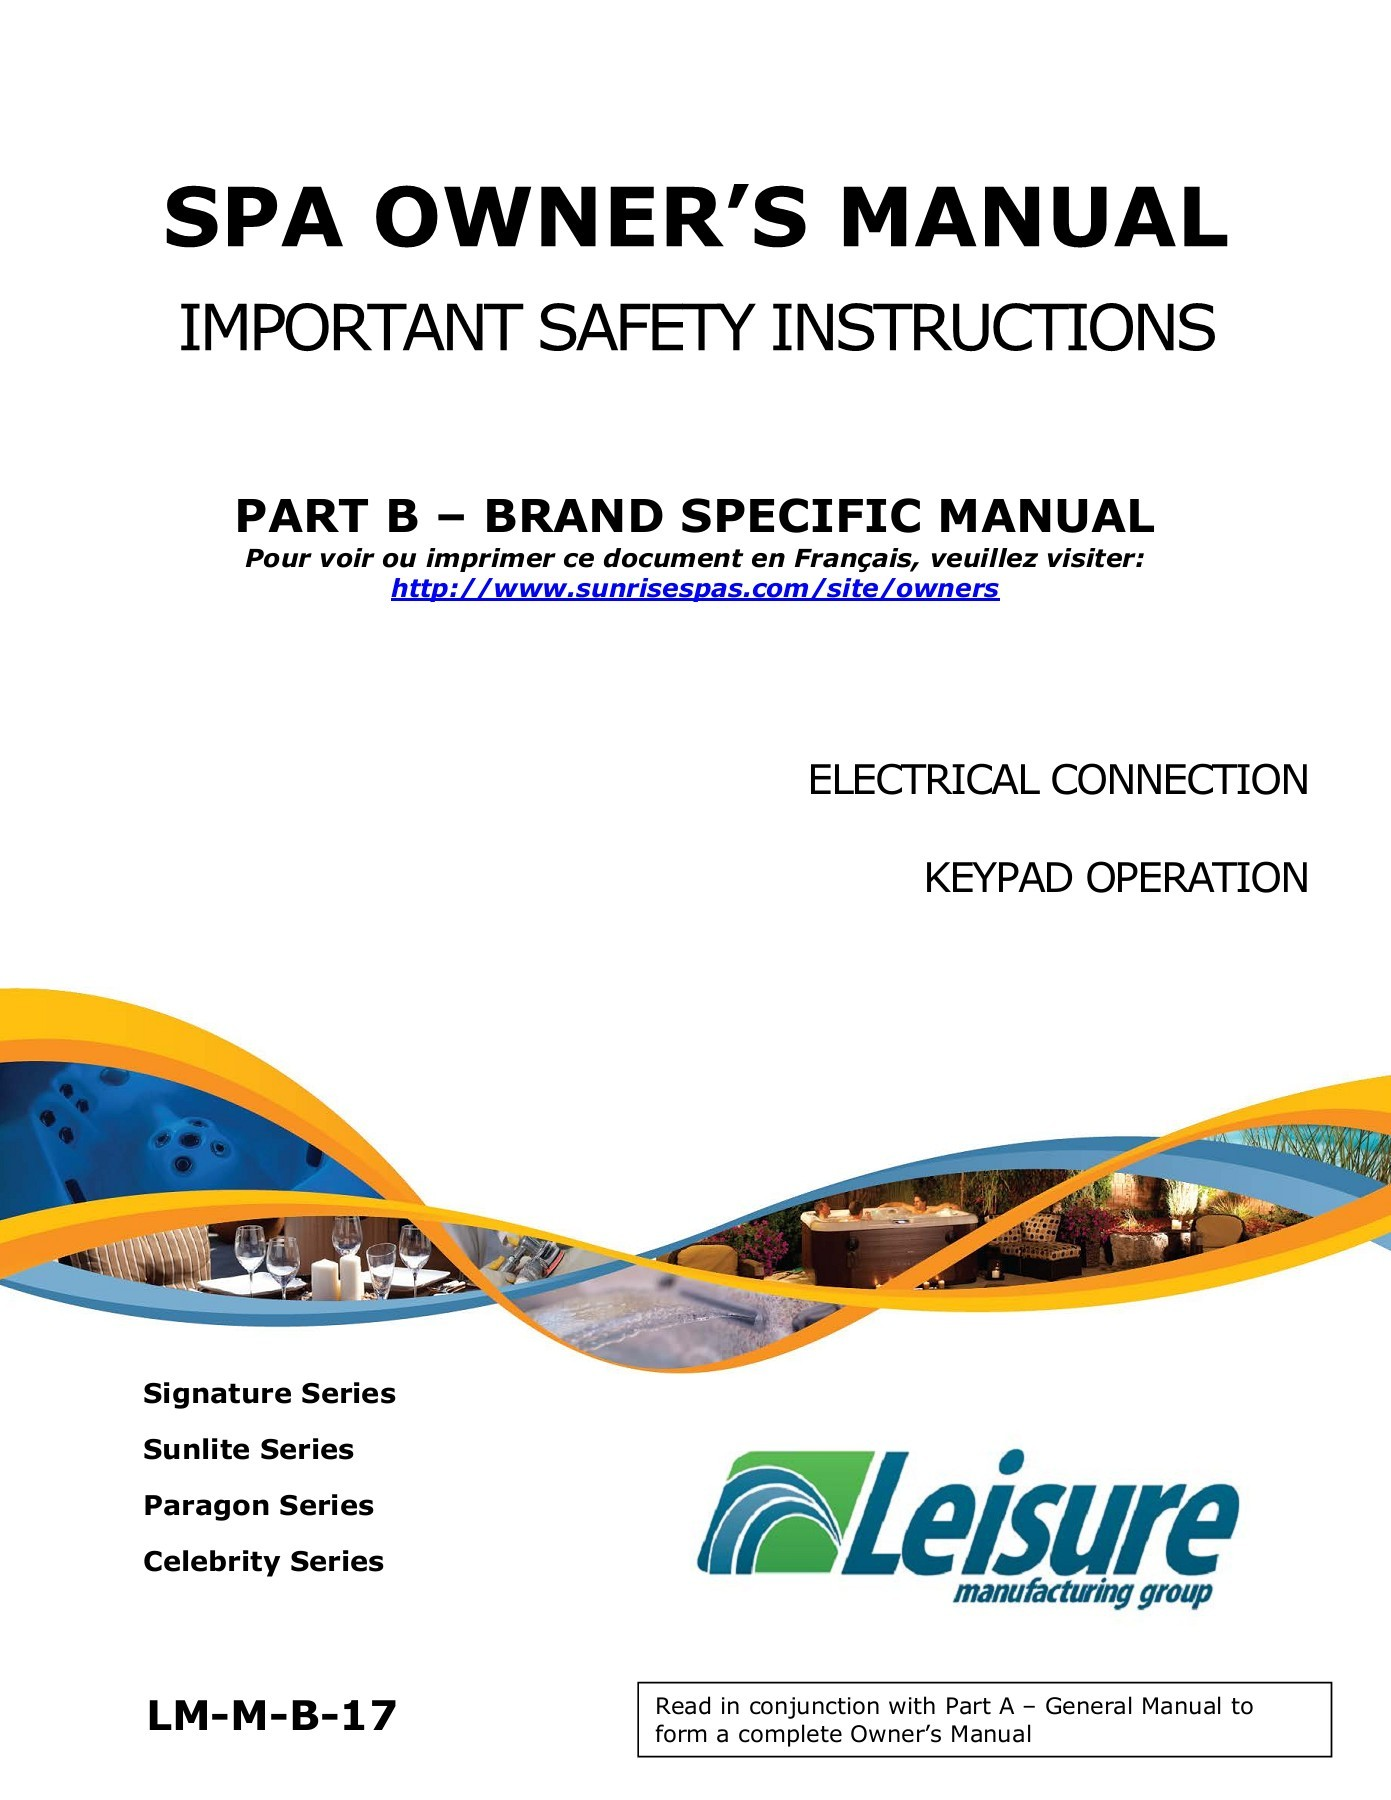 sunrise spas hot tubs owner resources guides and manuals rh jacuzziontario com jacuzzi j-270 owner's manual jacuzzi owners manuals online